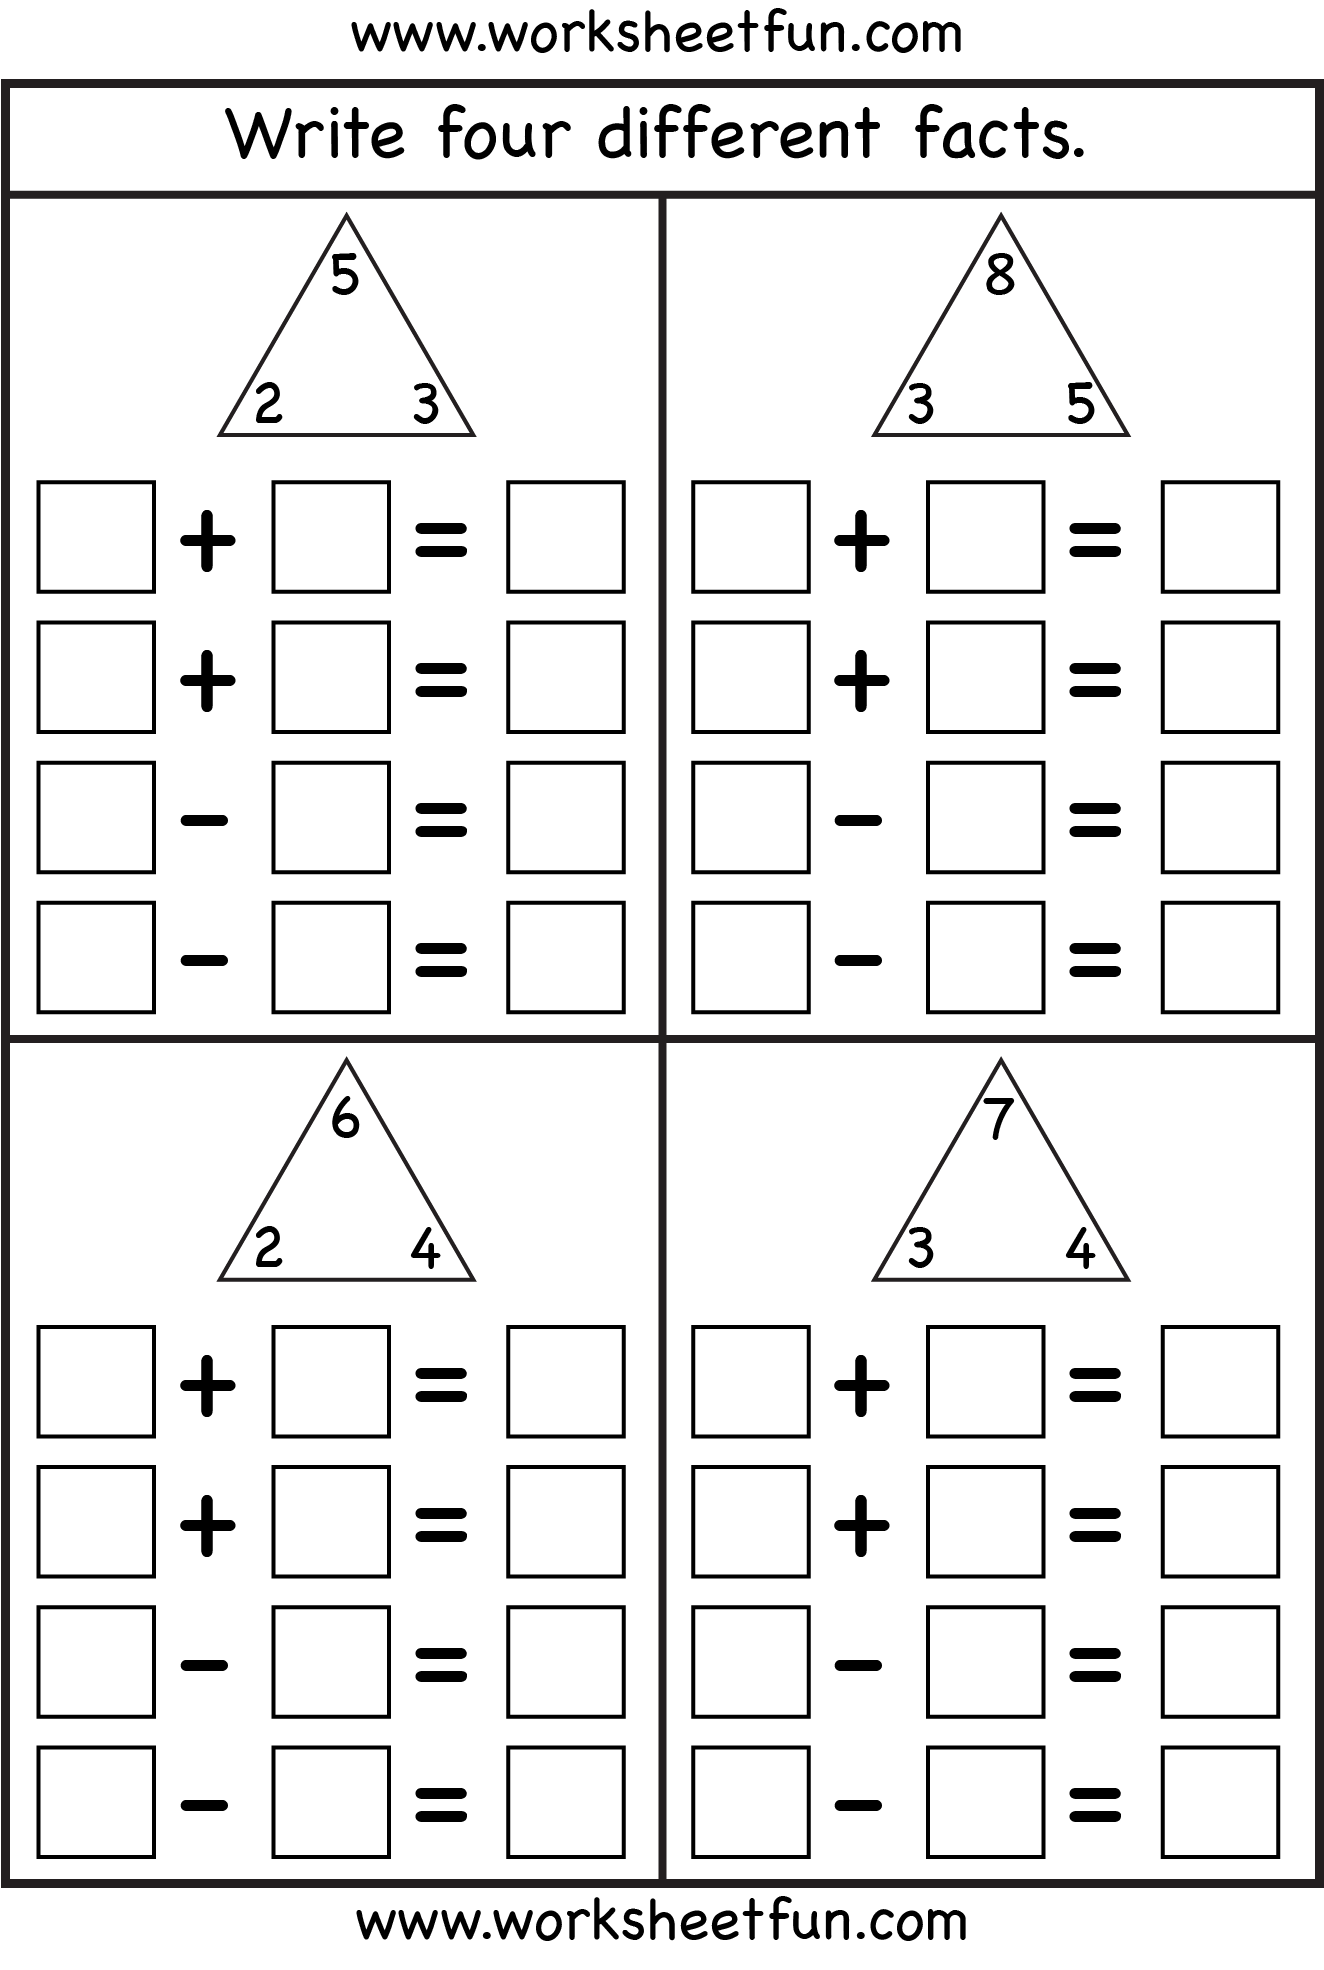 Fact Family Complete Each Fact Family 4 Worksheets Free Printable Worksheets Worksheetfun